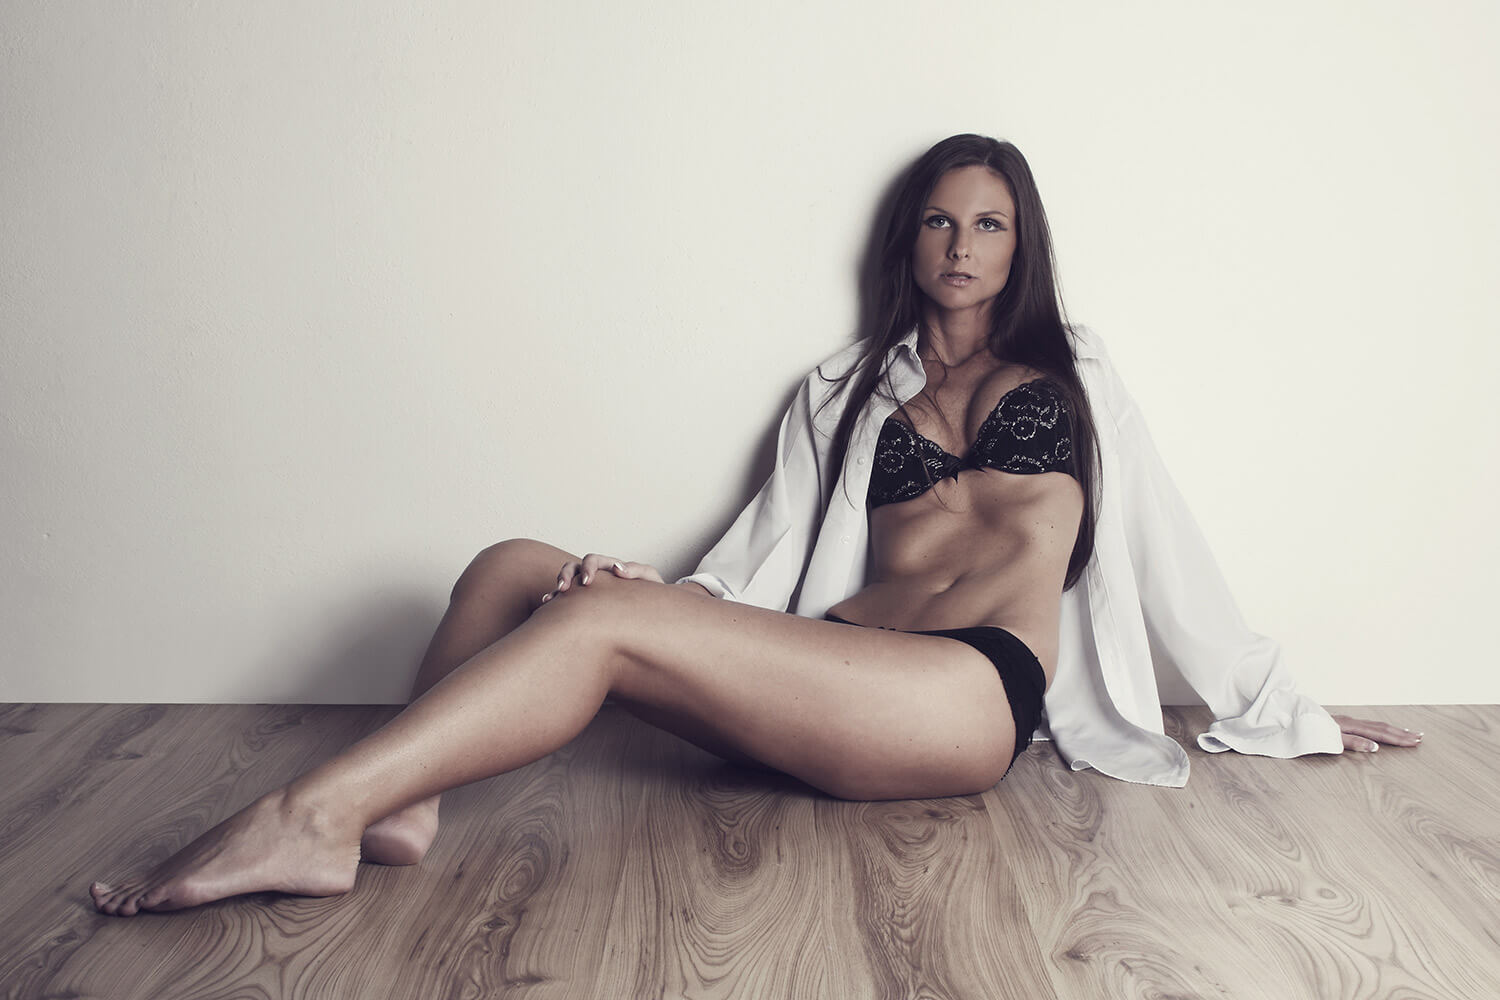 fashion photo of a woman in black lingerie and a white shirt sitting on the floor